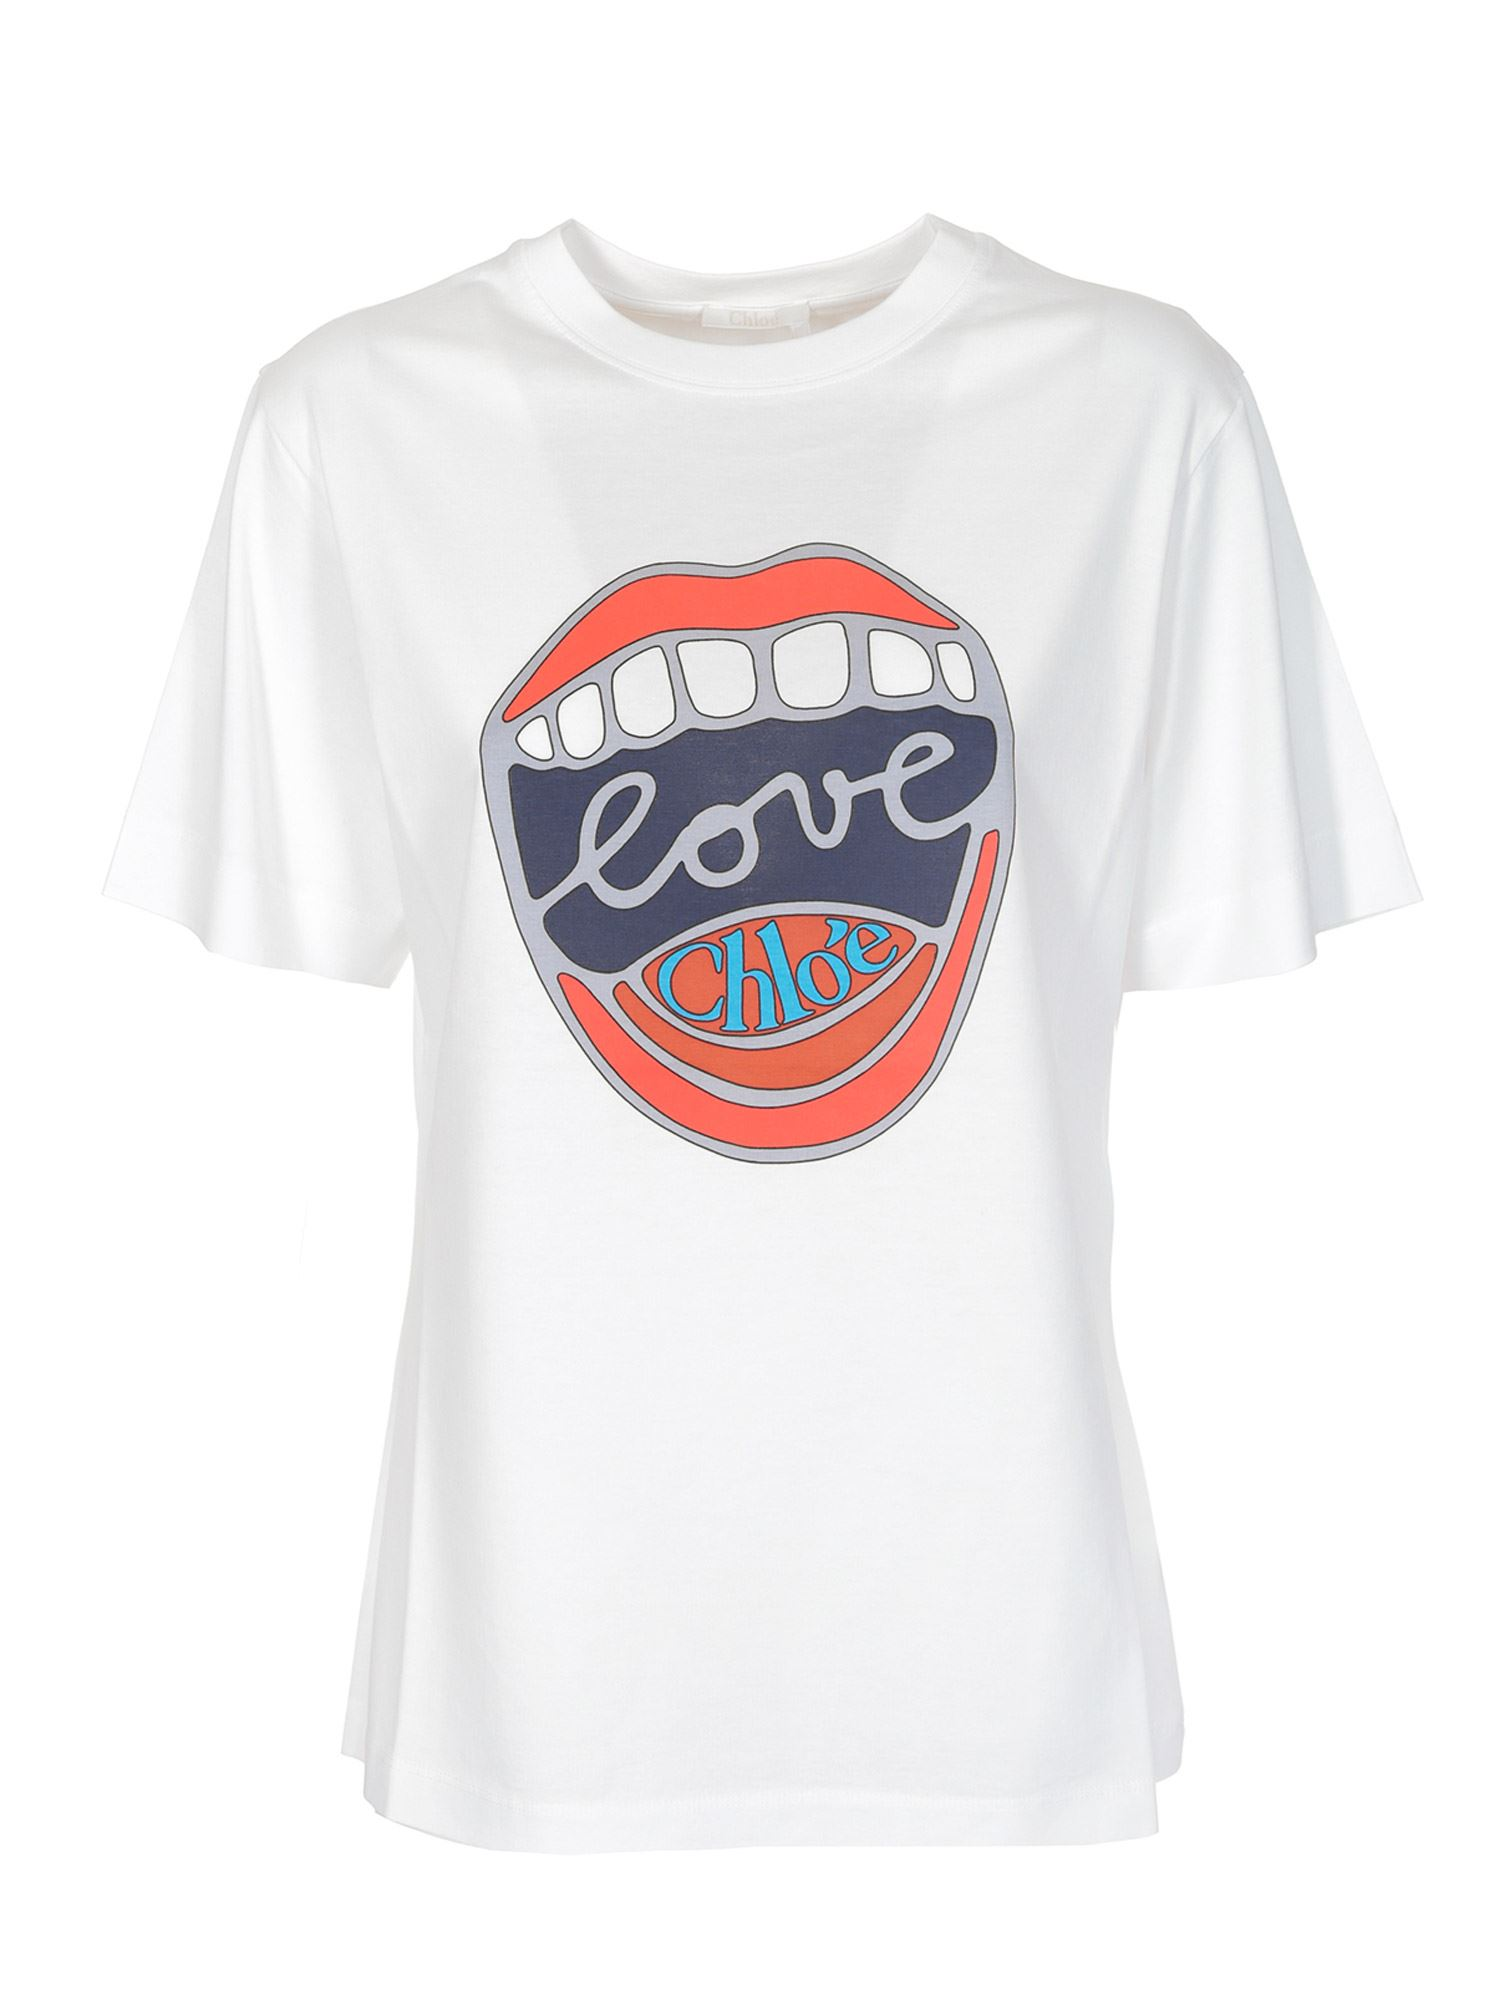 Chloé LOVE T-SHIRT IN WHITE